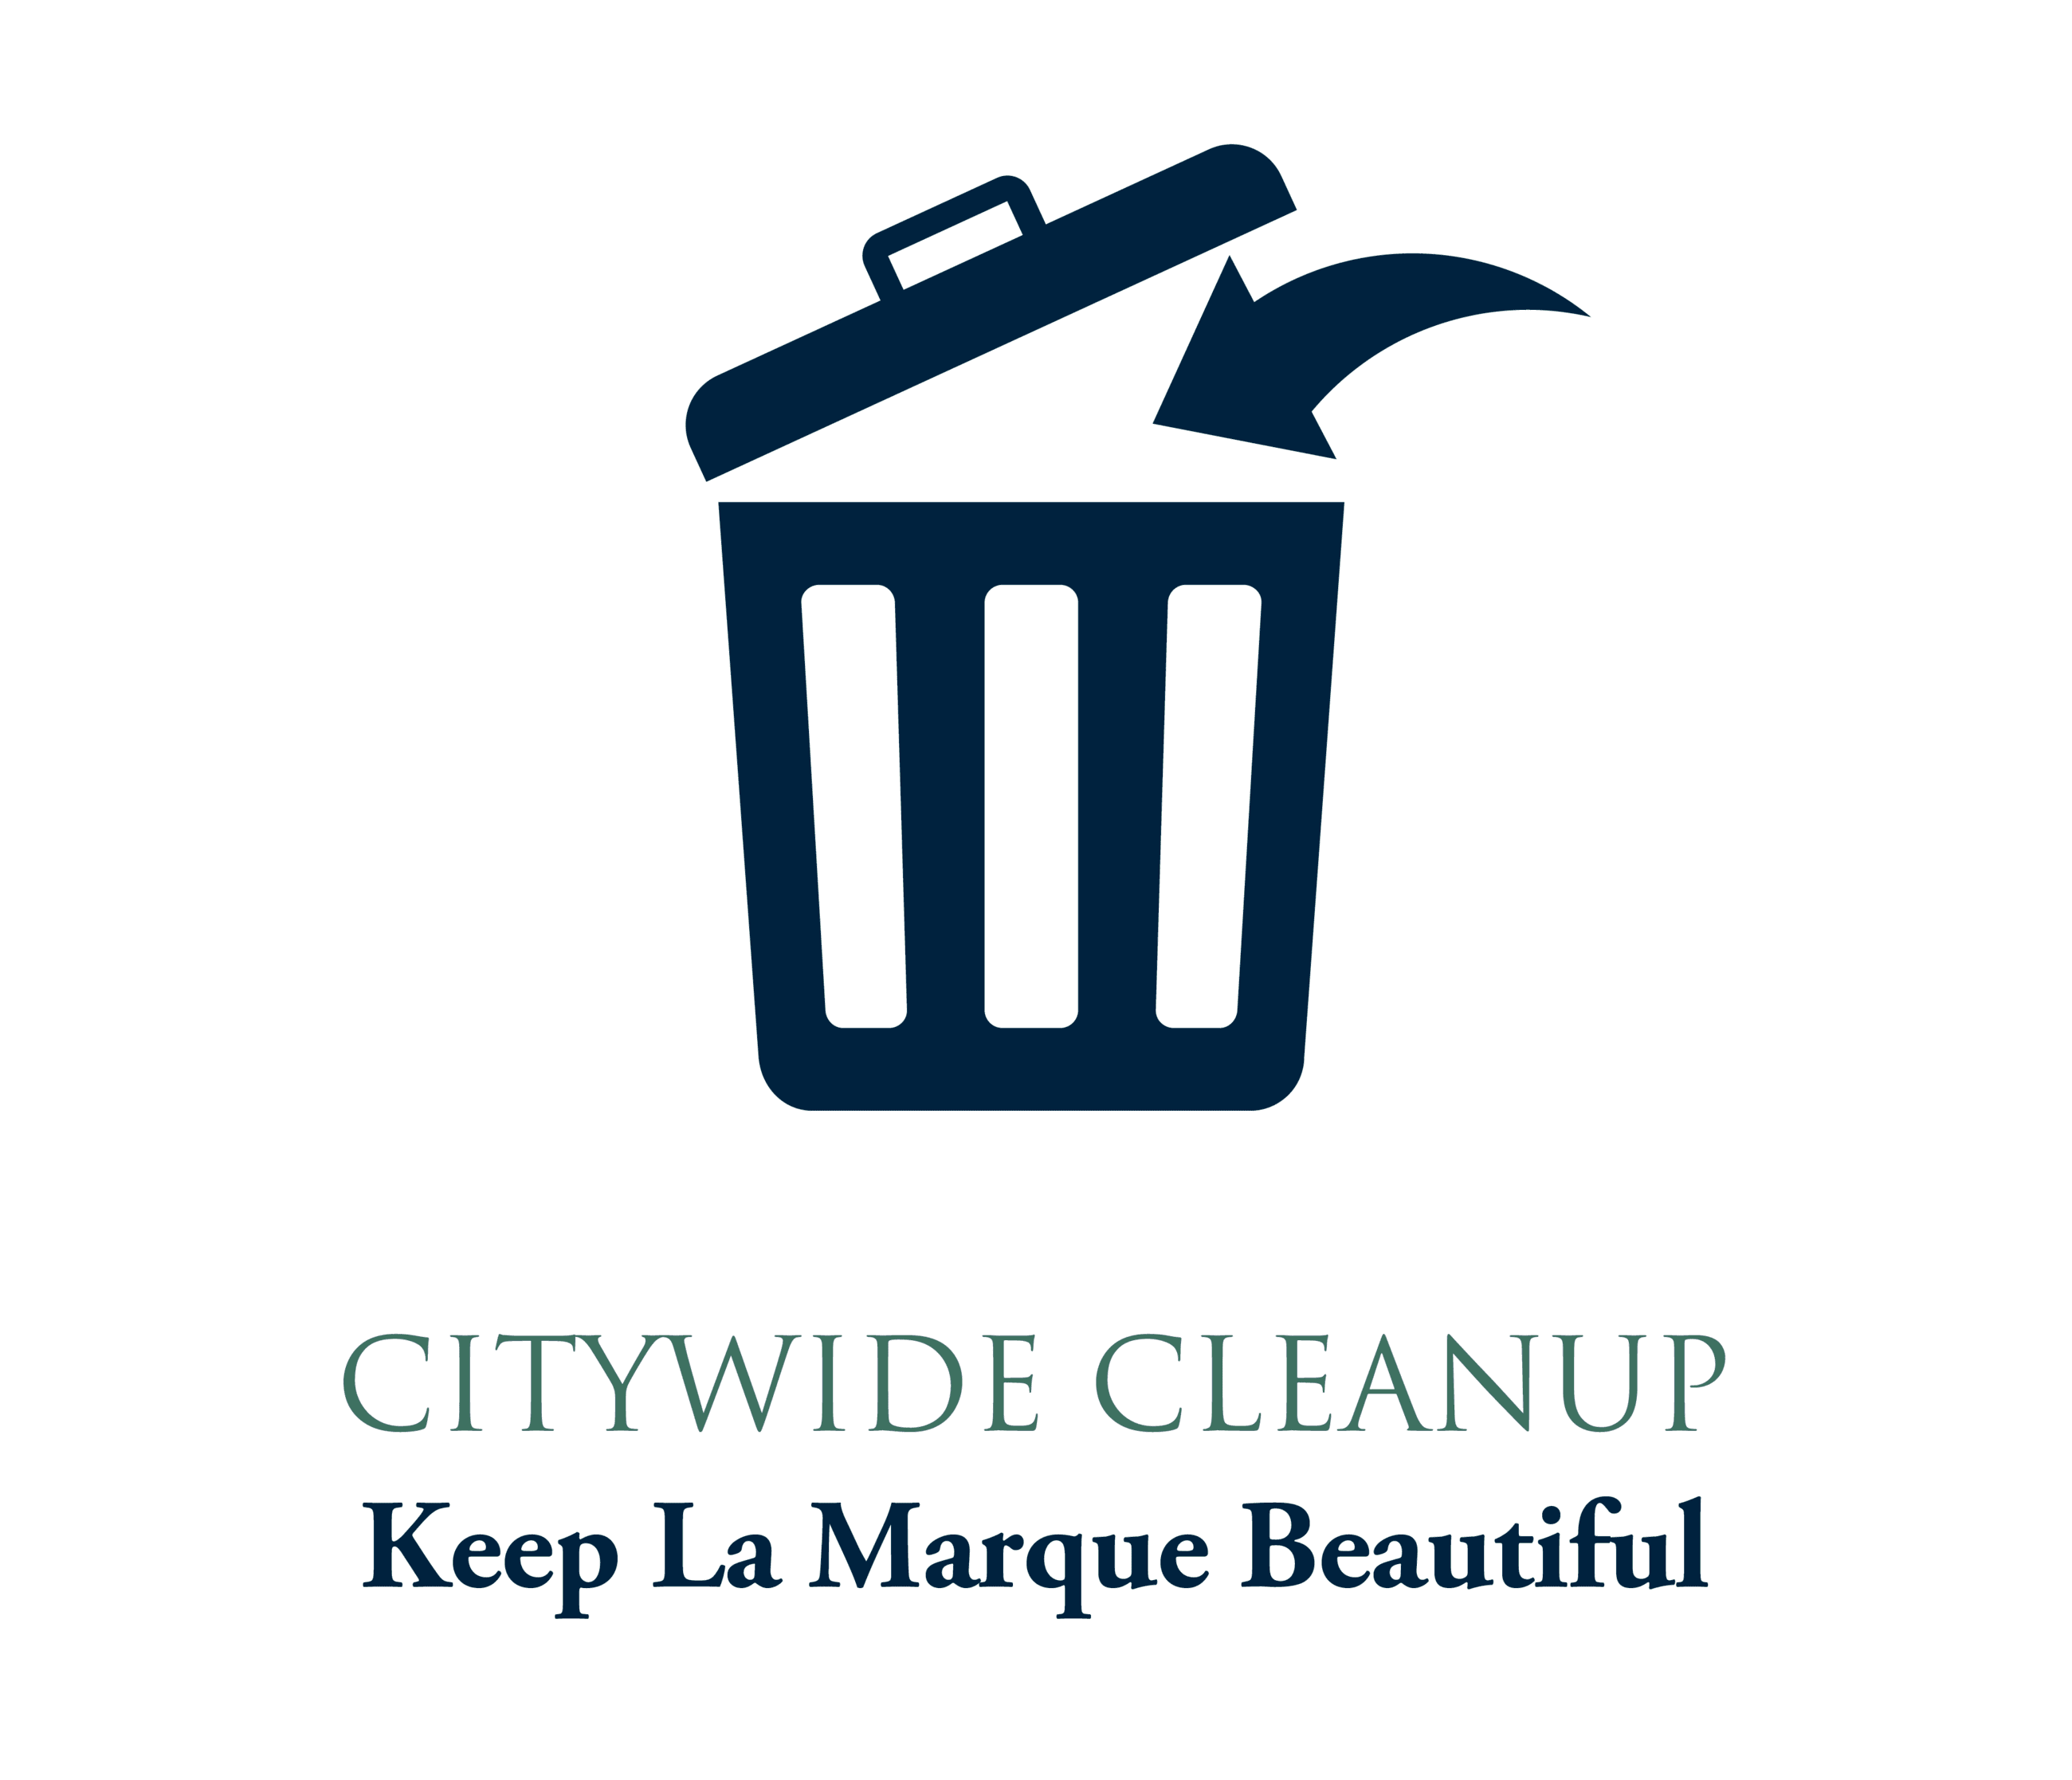 April 2020 Cleanup graphic with trash can icon